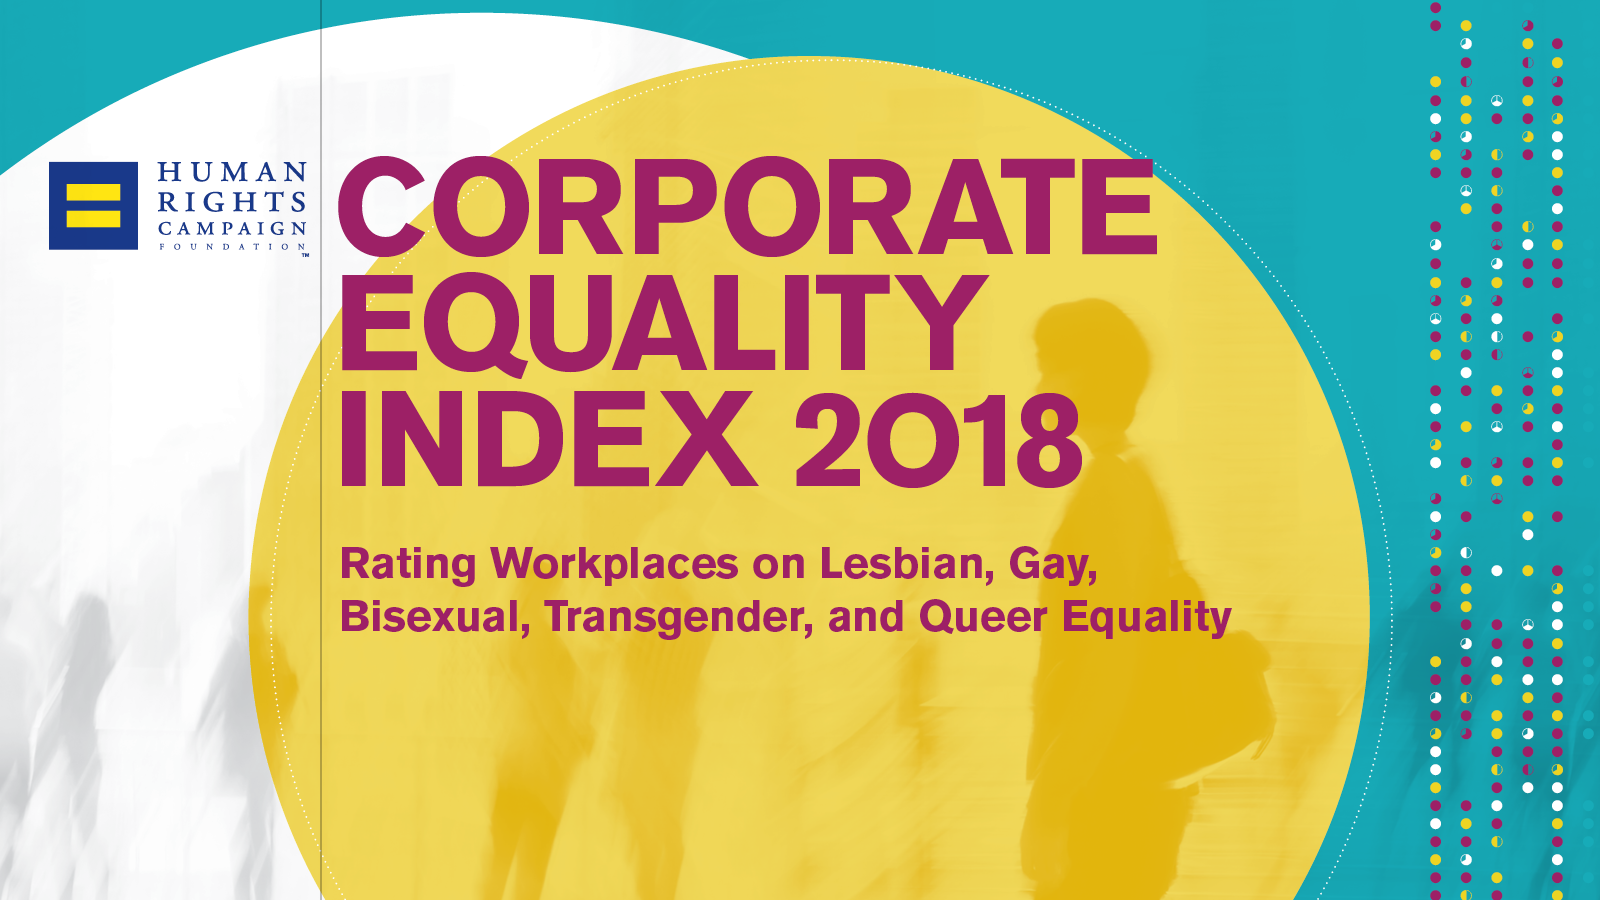 Corporate Equality Index by HRC thumbnail image